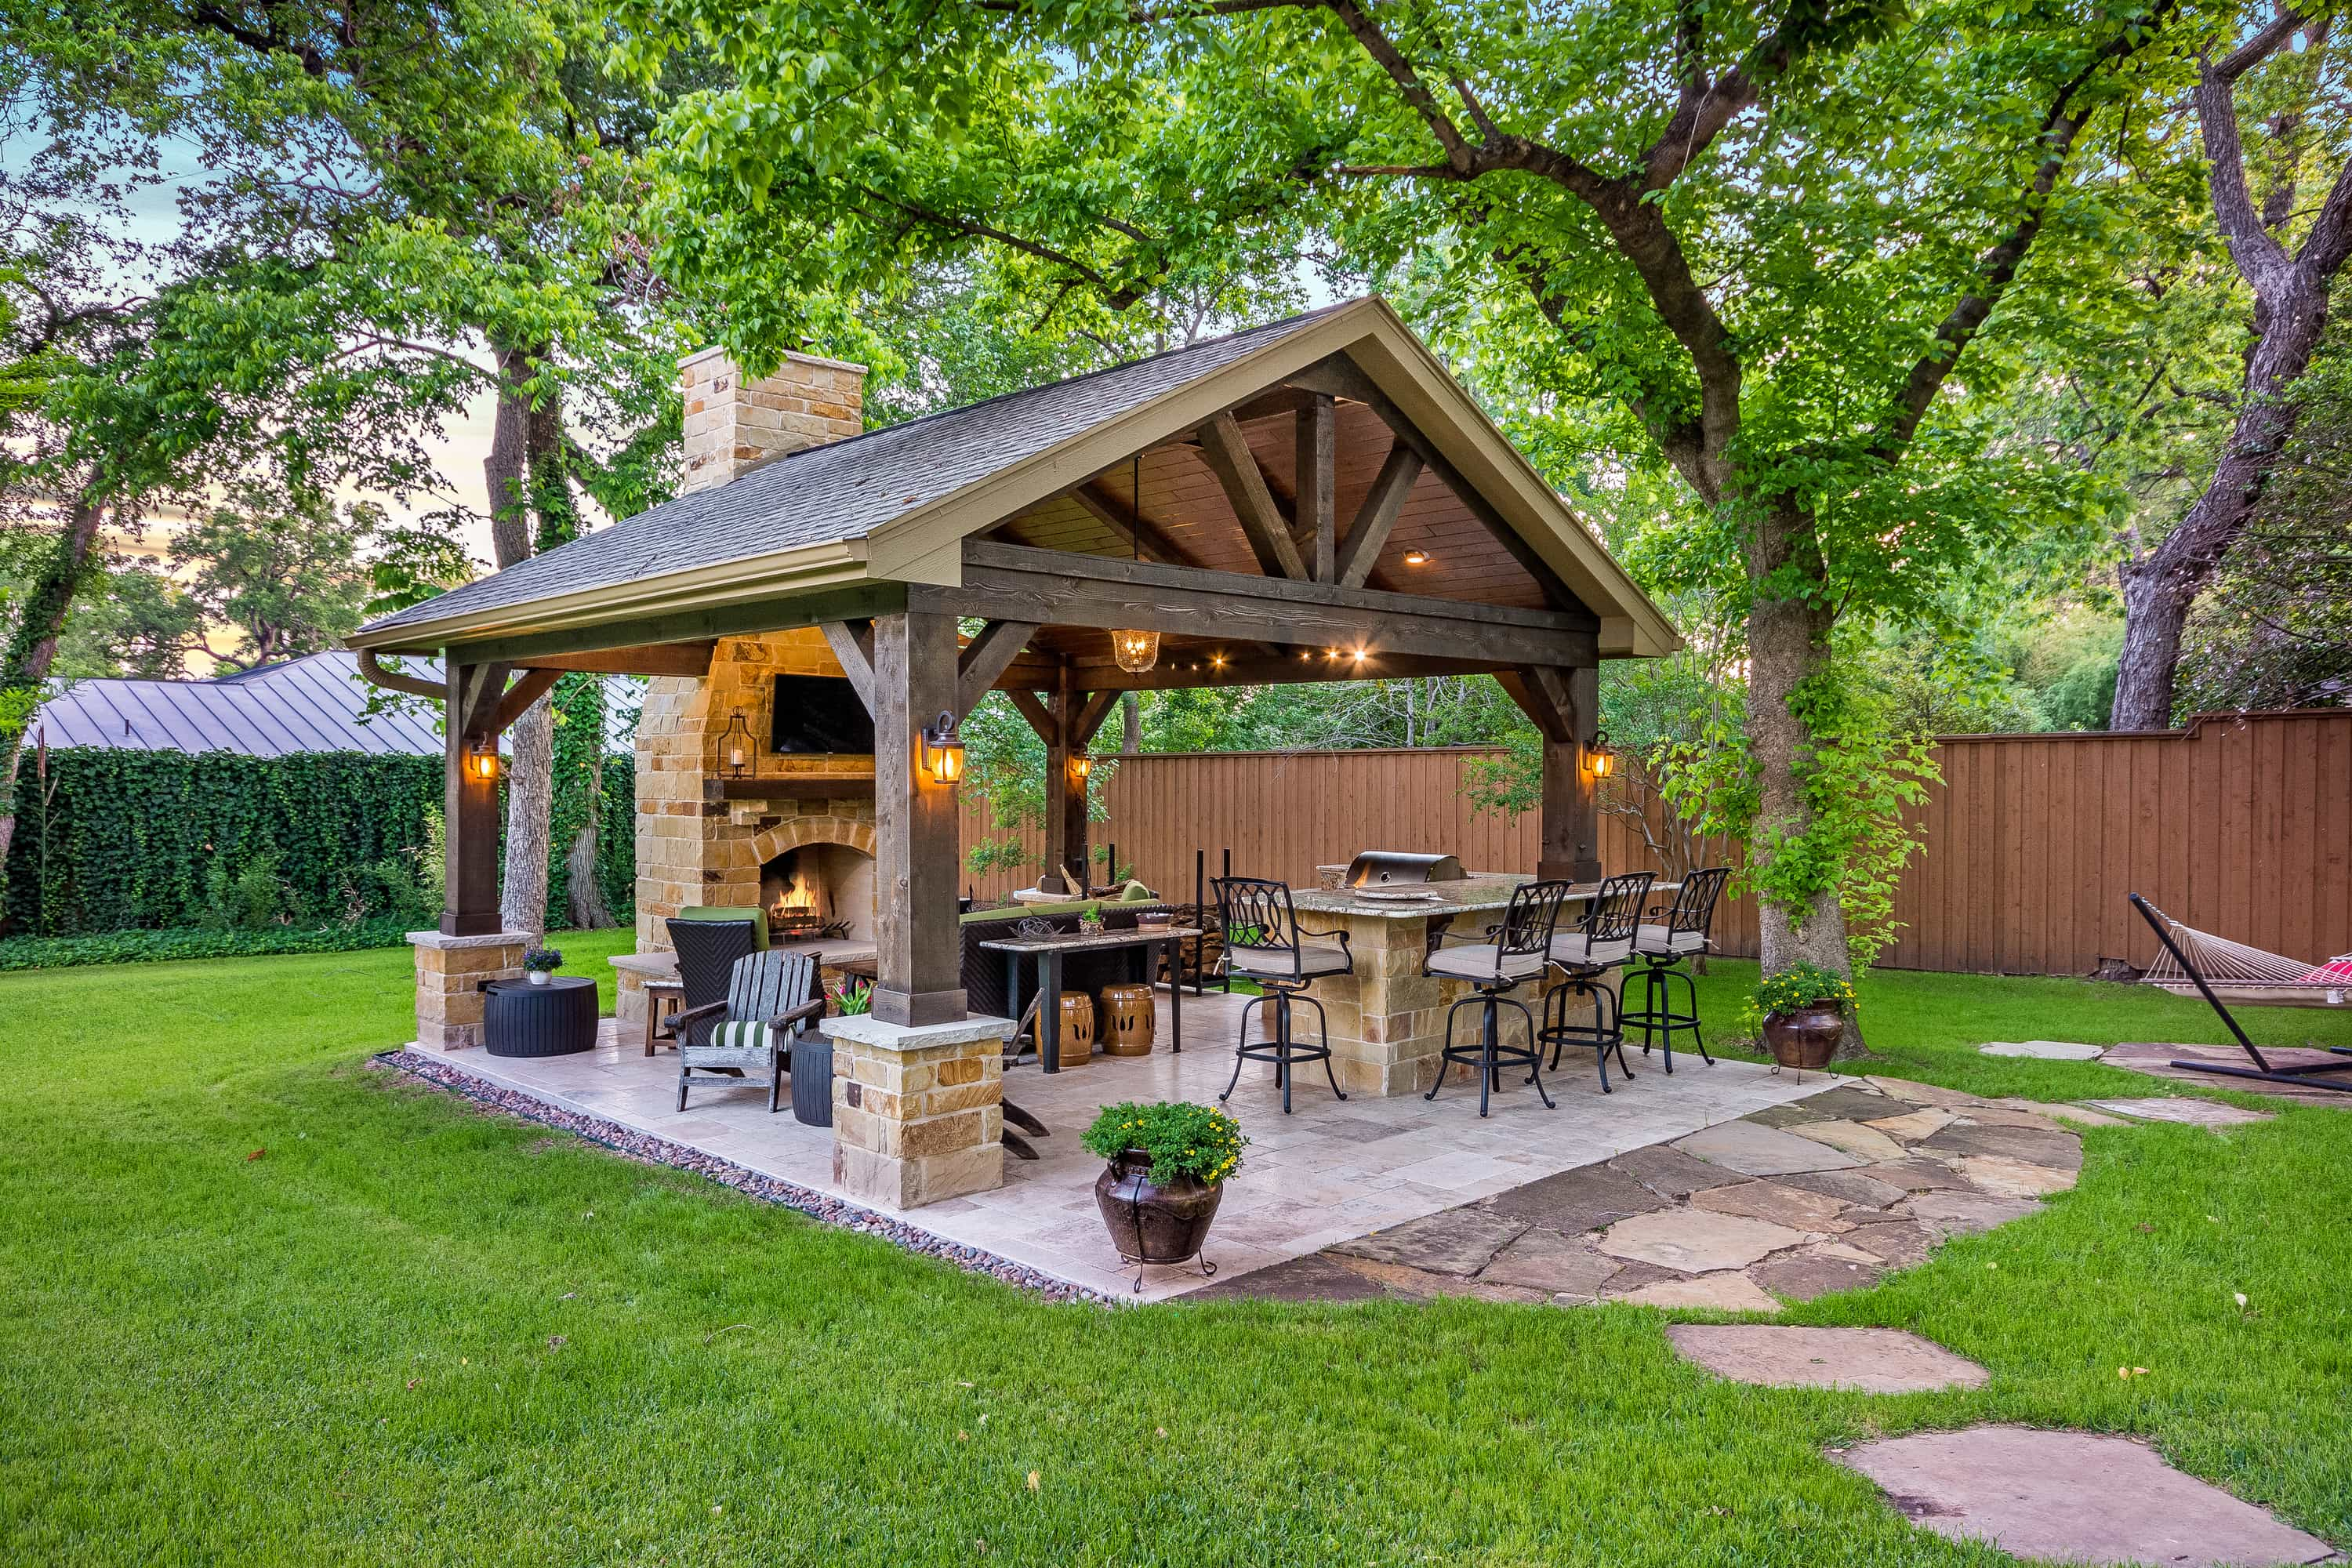 Top 25 Best Backyard Play Ideas On Pinterest Kids Yard Simple Backyard Climbing Structures further Shade Cloth 1 further Outdoor Stained Glass Gazebo furthermore Patio Furniture Outdoor Decor Backyard Design additionally brownjordanstructures. on backyard gazebo